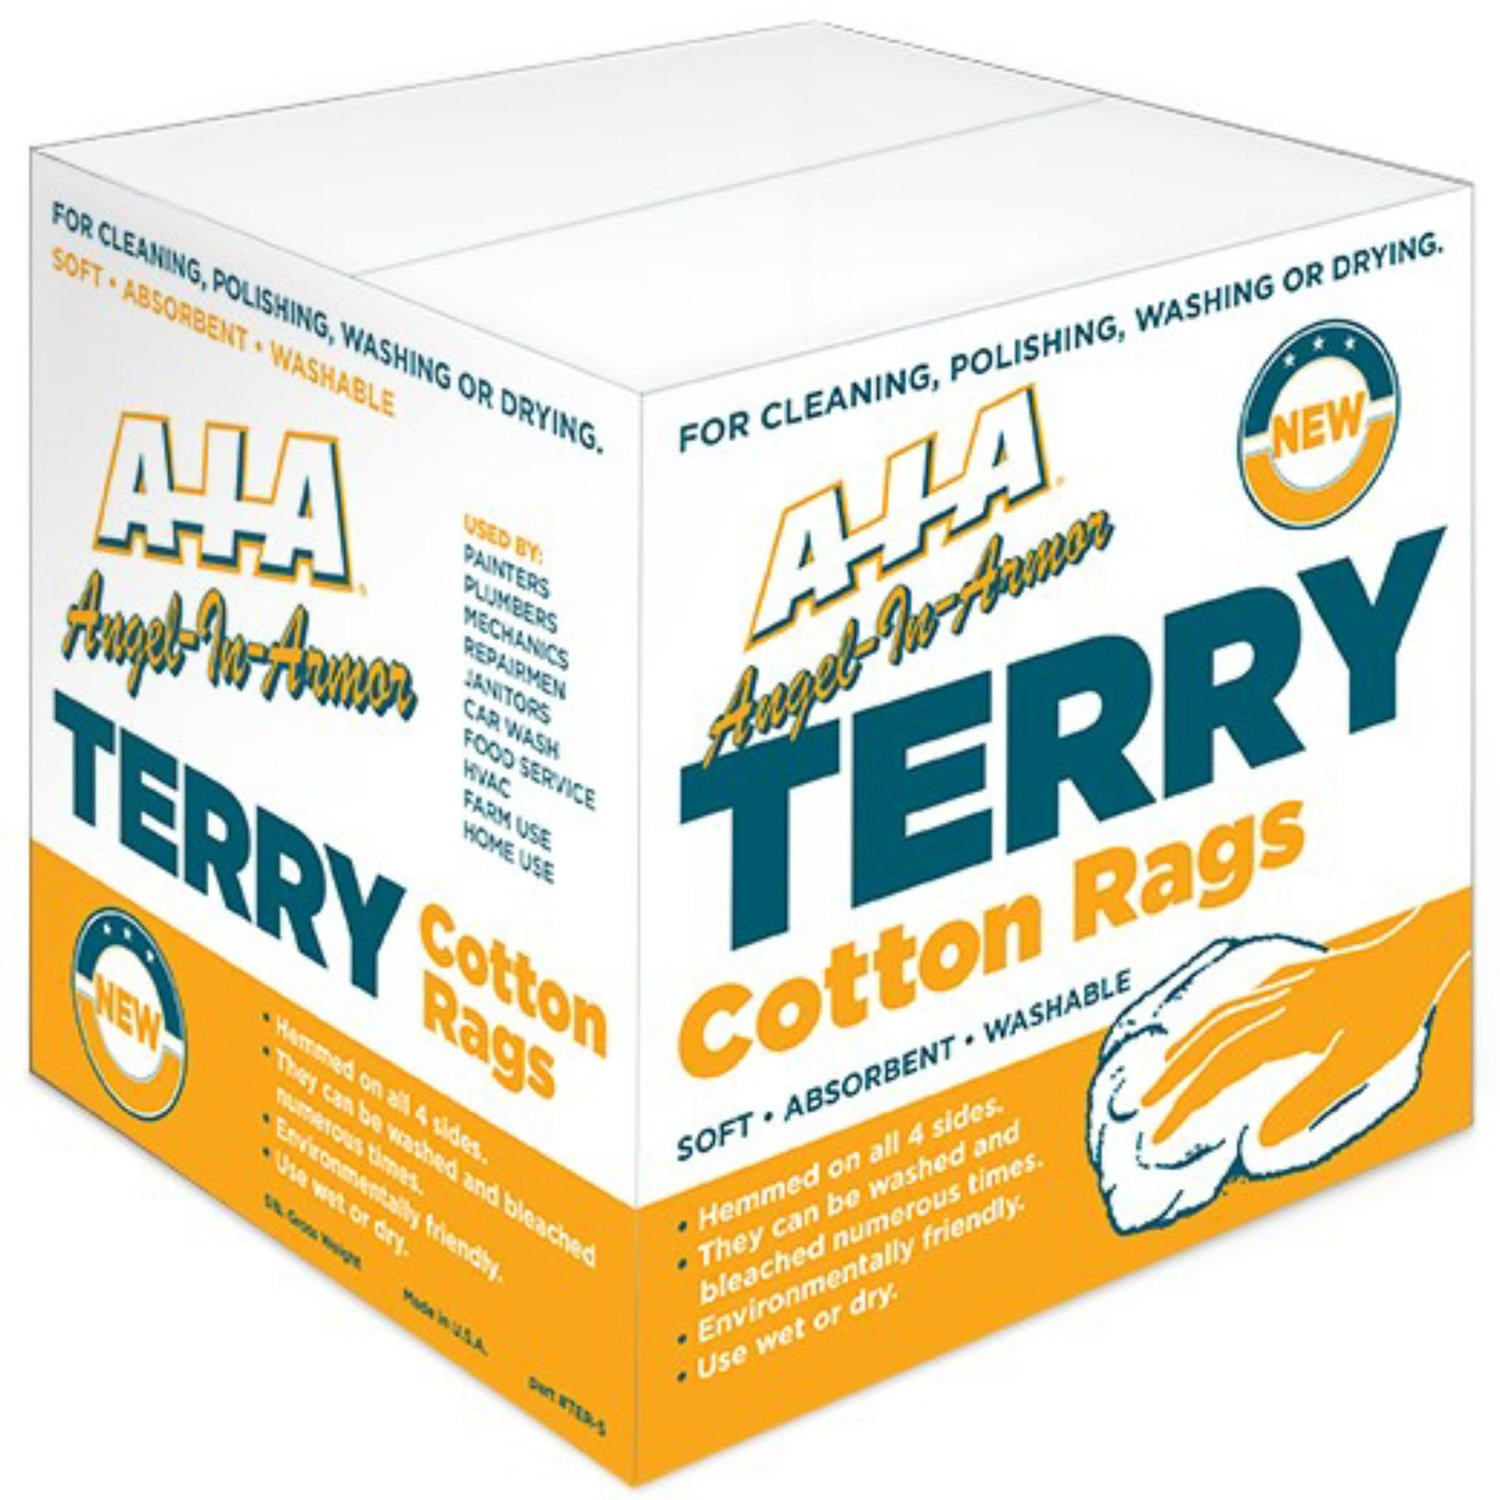 5 Lb. Box of New White Cotton Terry Wiping Cloths Bar Towels